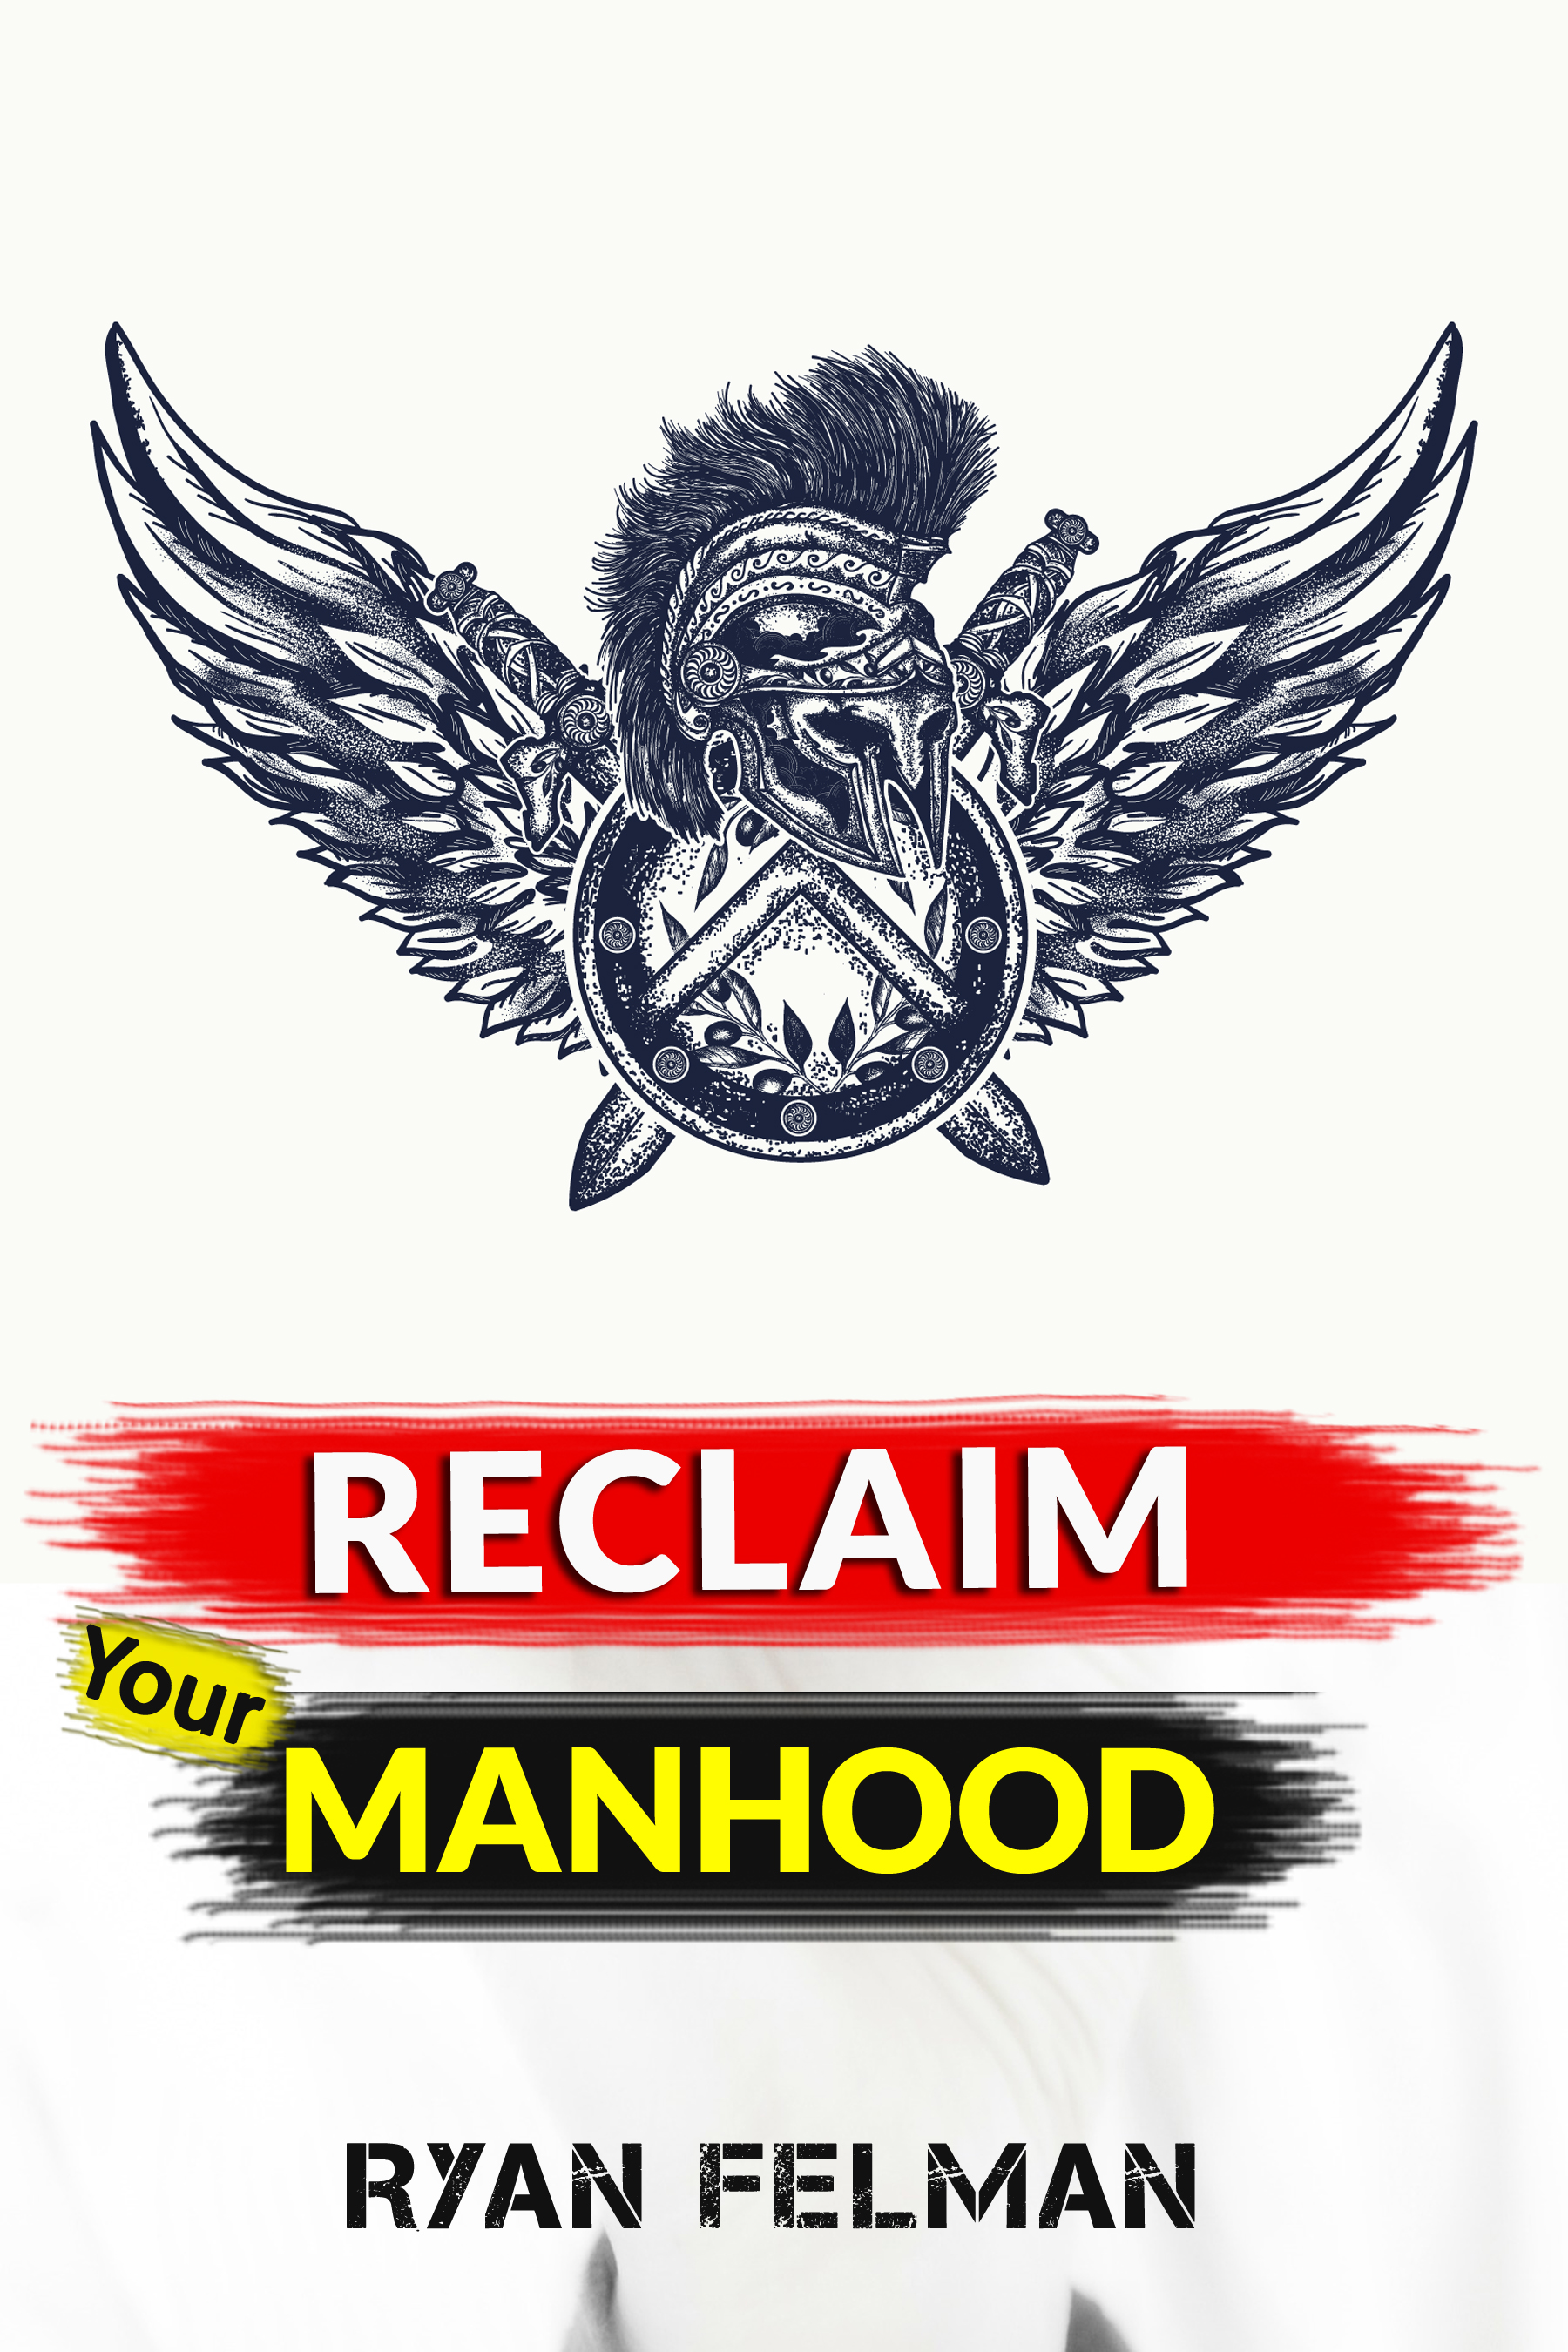 Reclaim Your Manhood Cover - Copy.jpg